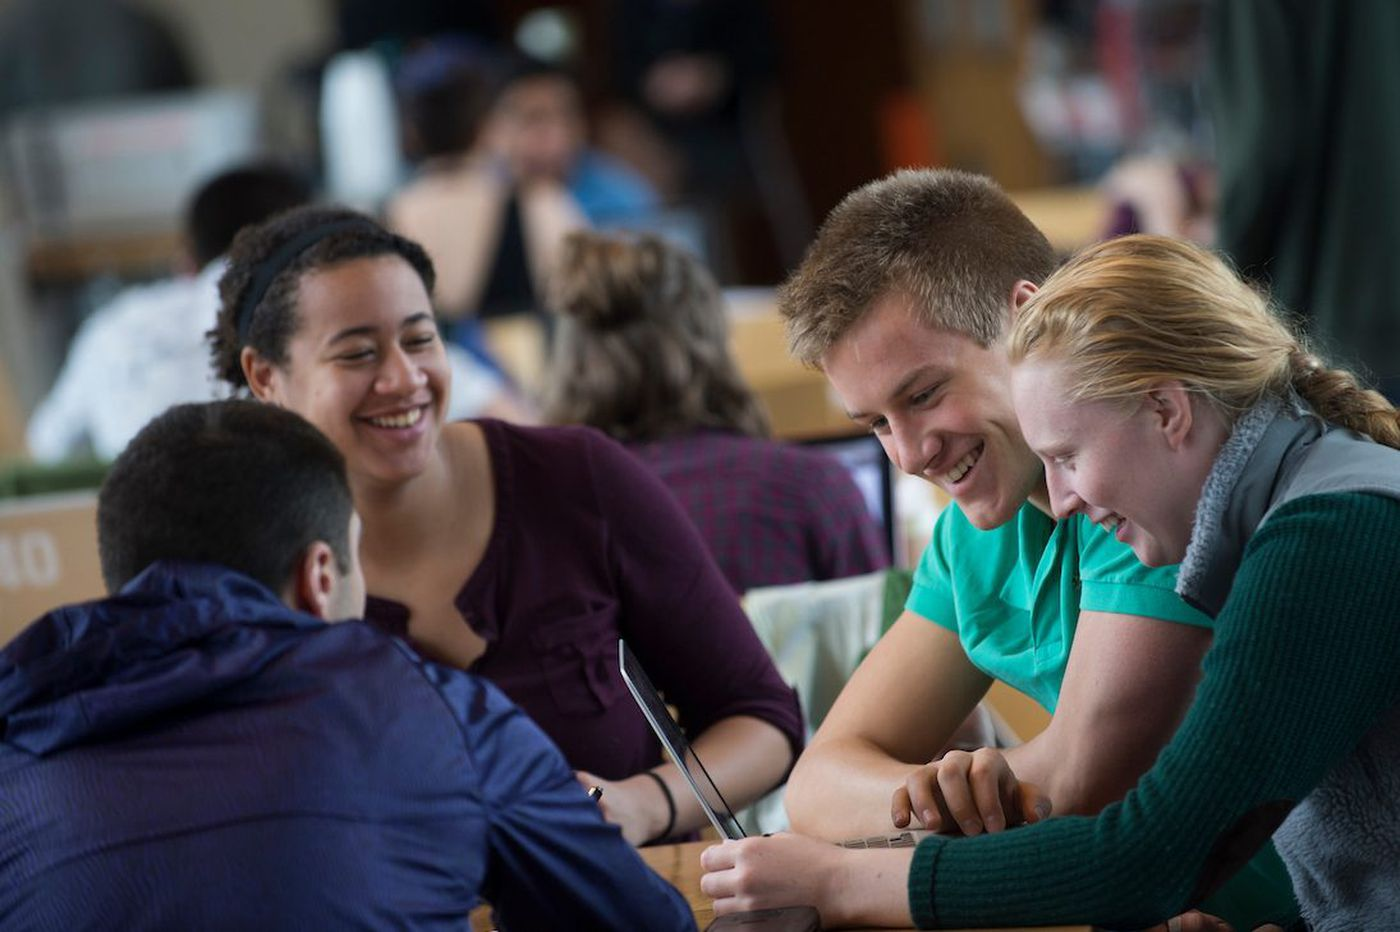 Advice to students who need help overcoming the barriers to higher education | Opinion